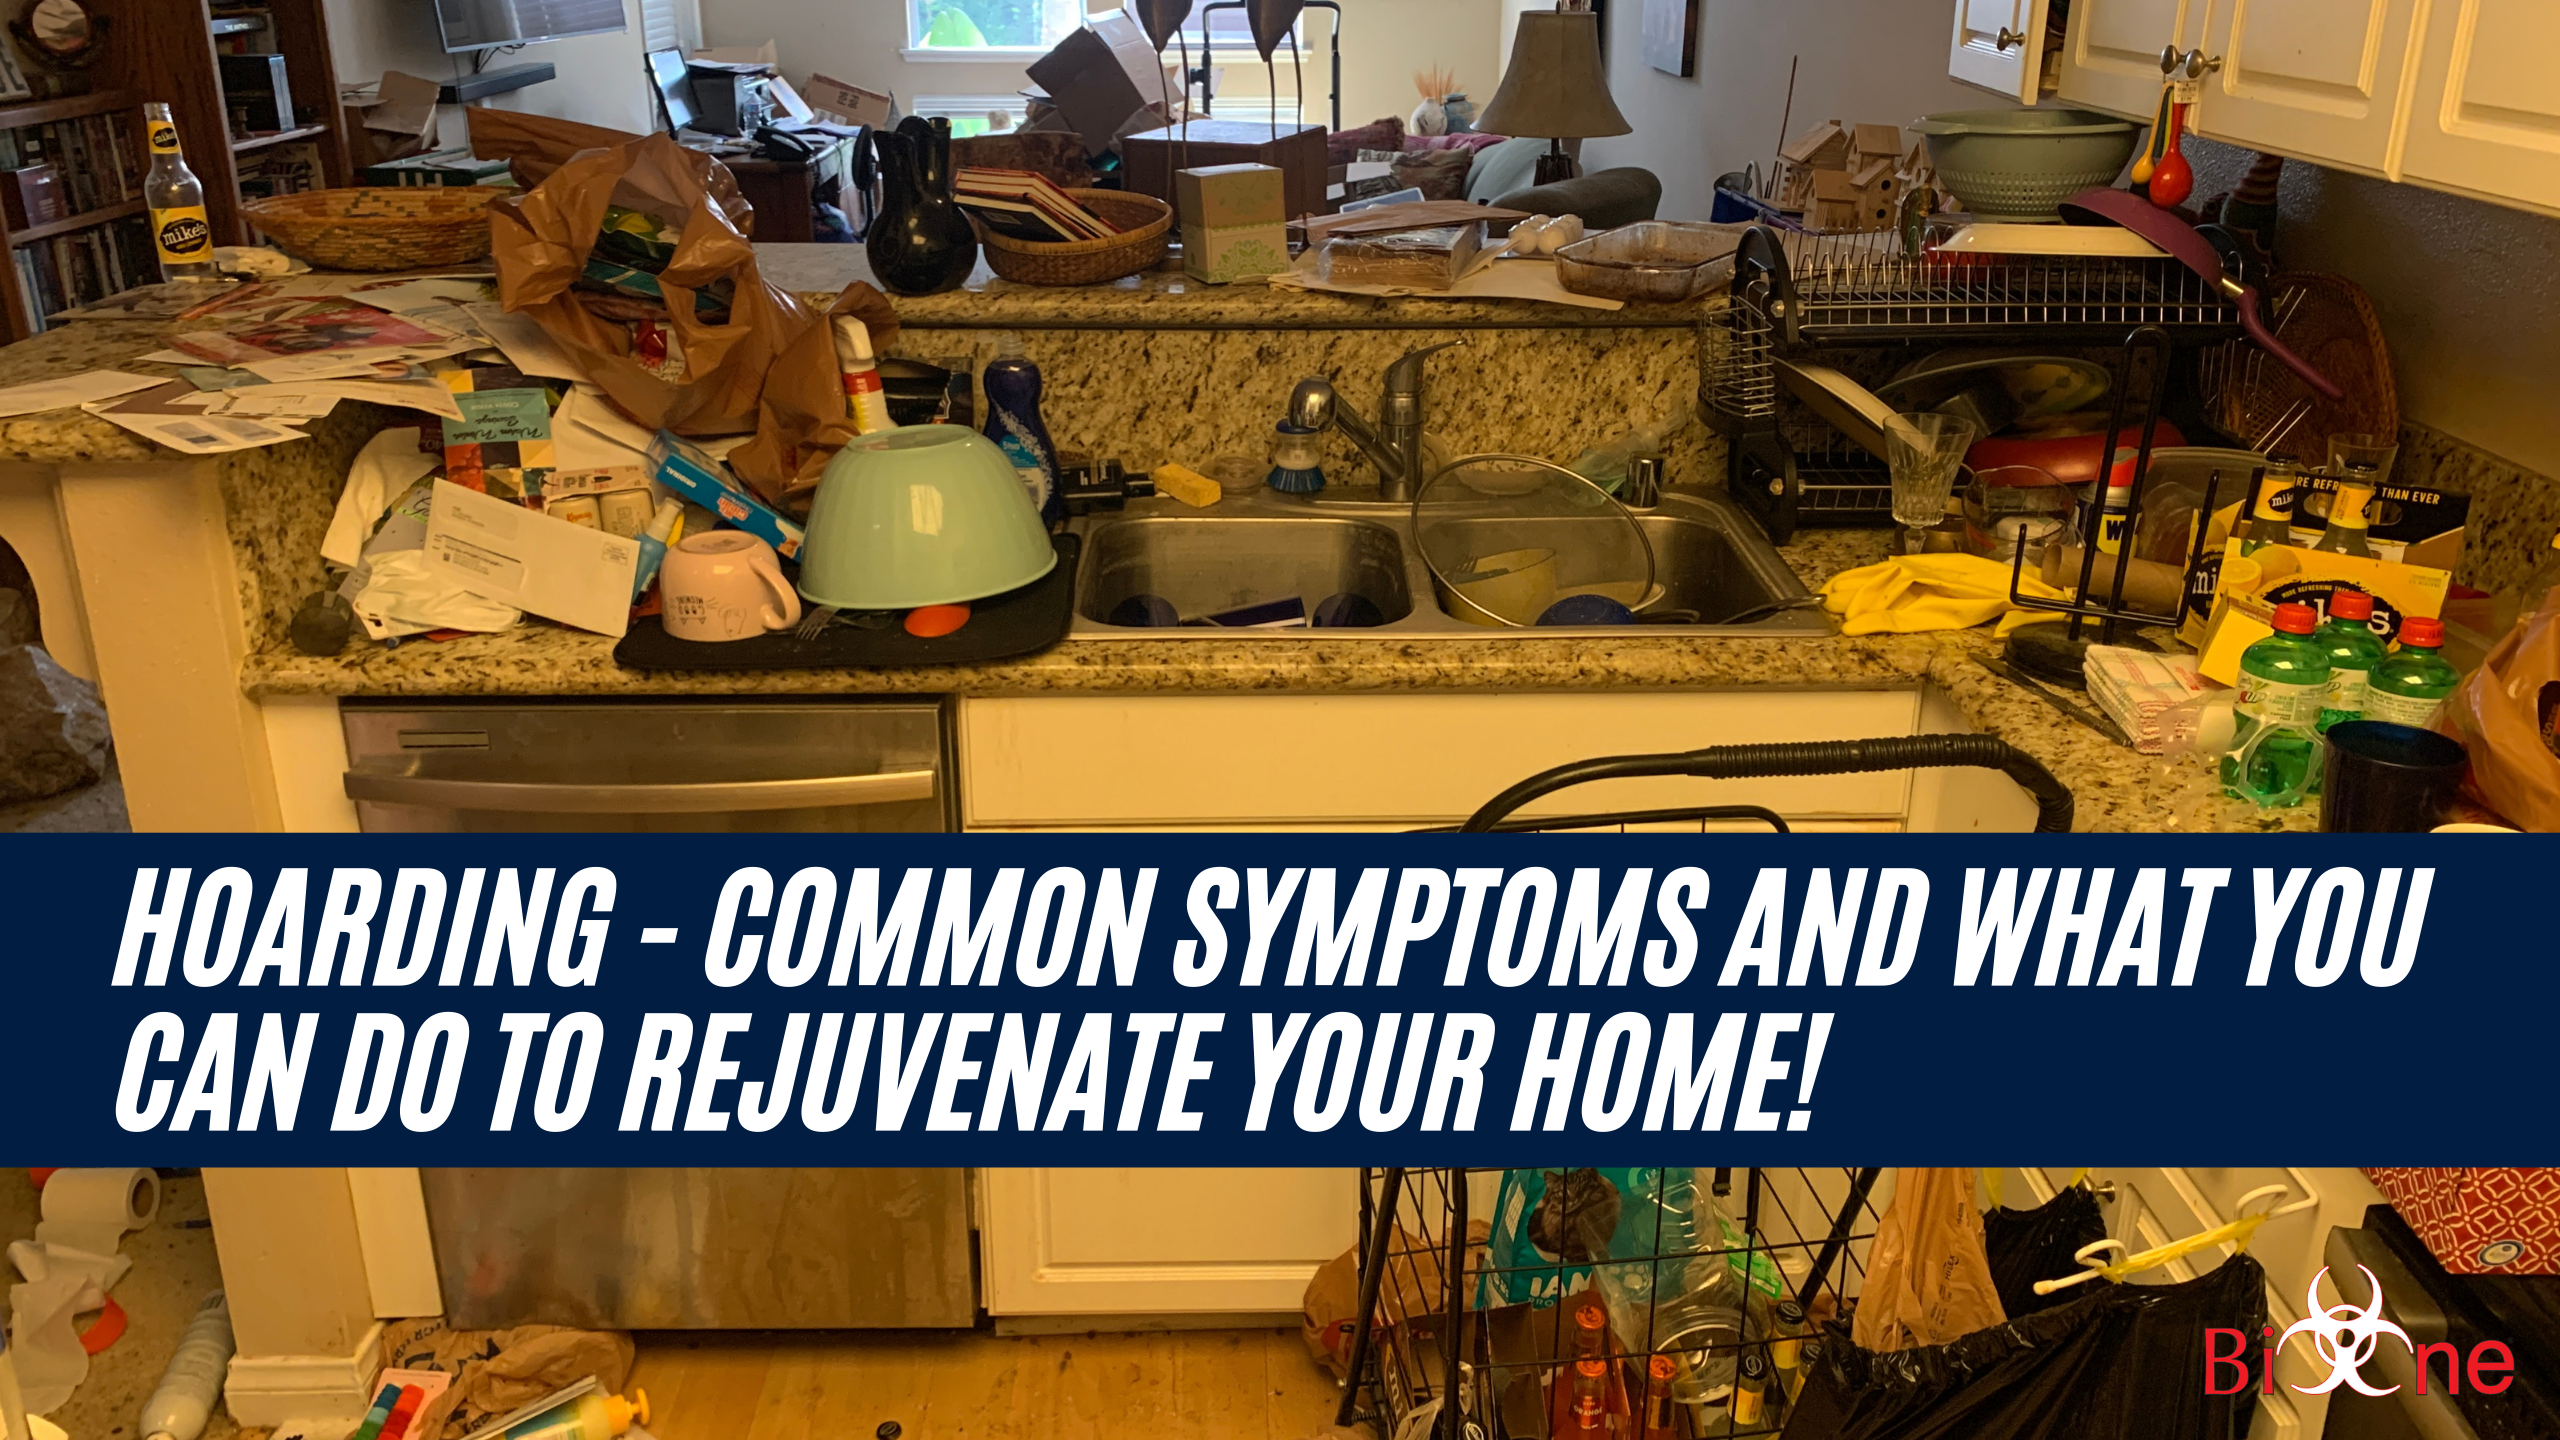 HOARDING: Common symptoms and what you can do to rejuvenate your home!